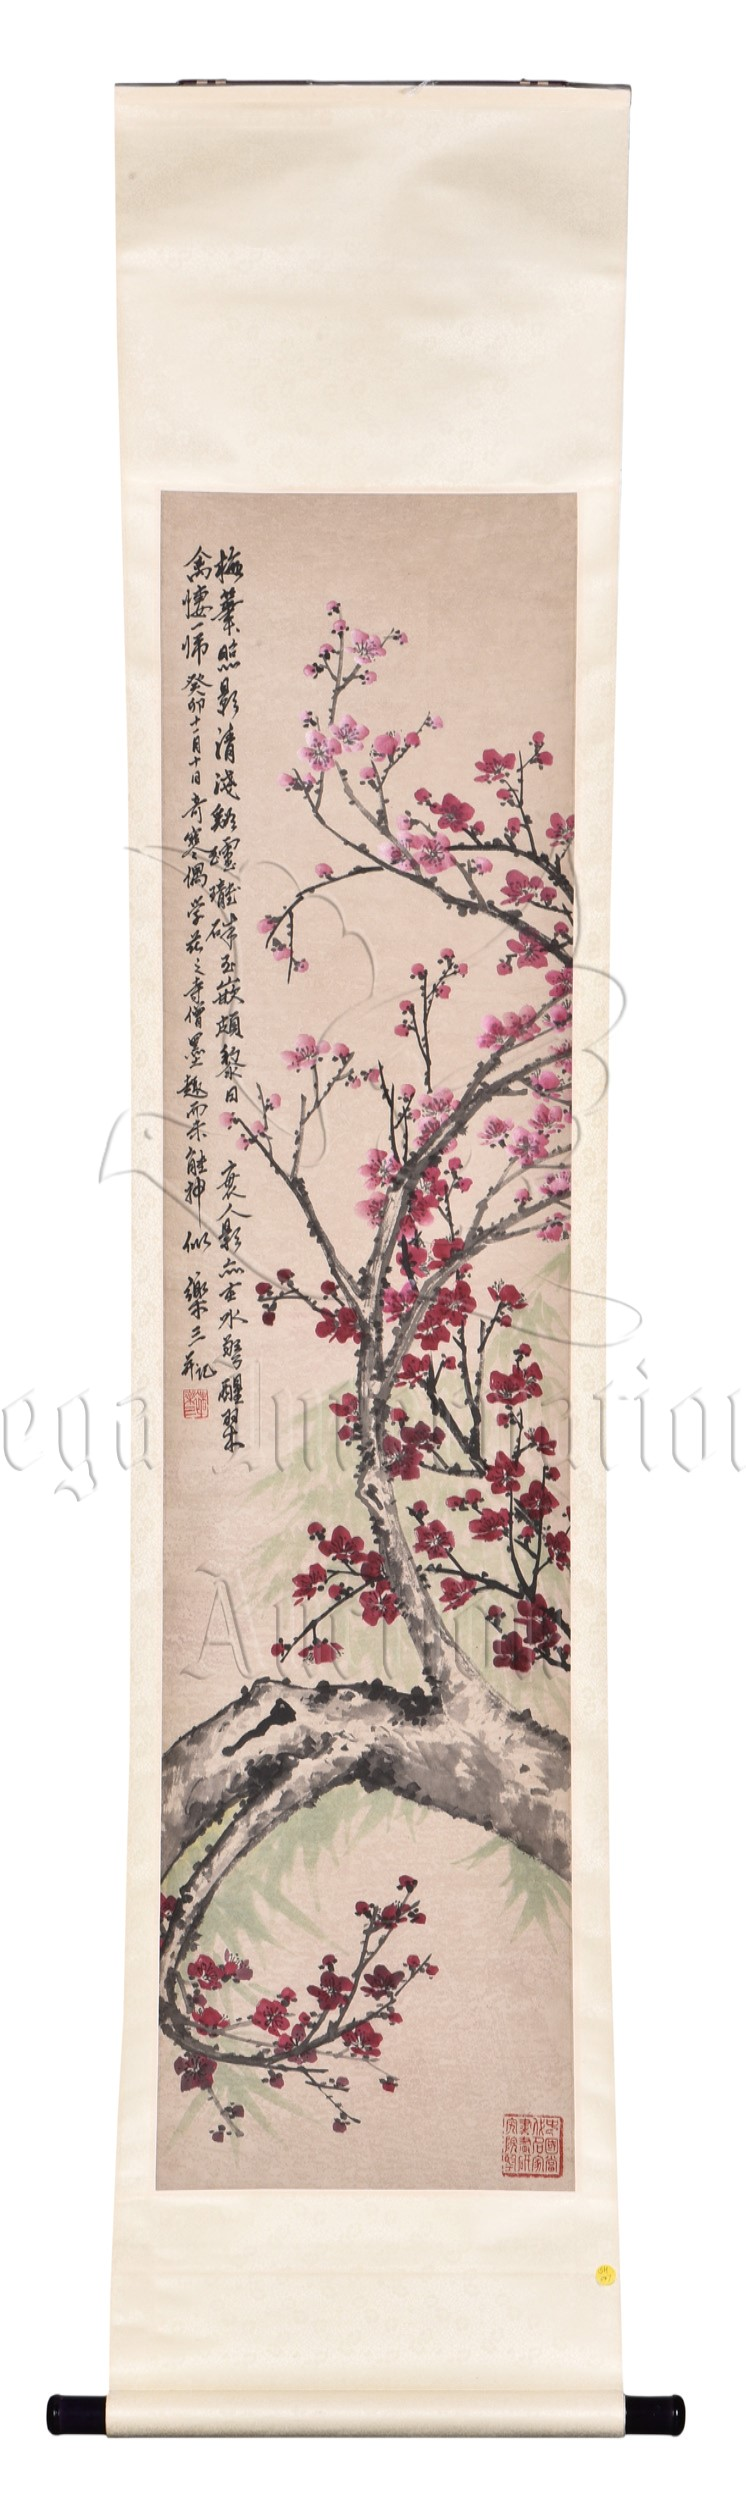 ZHU LESAN: INK AND COLOR ON PAPER PAINTING 'PLUM FLOWERS'